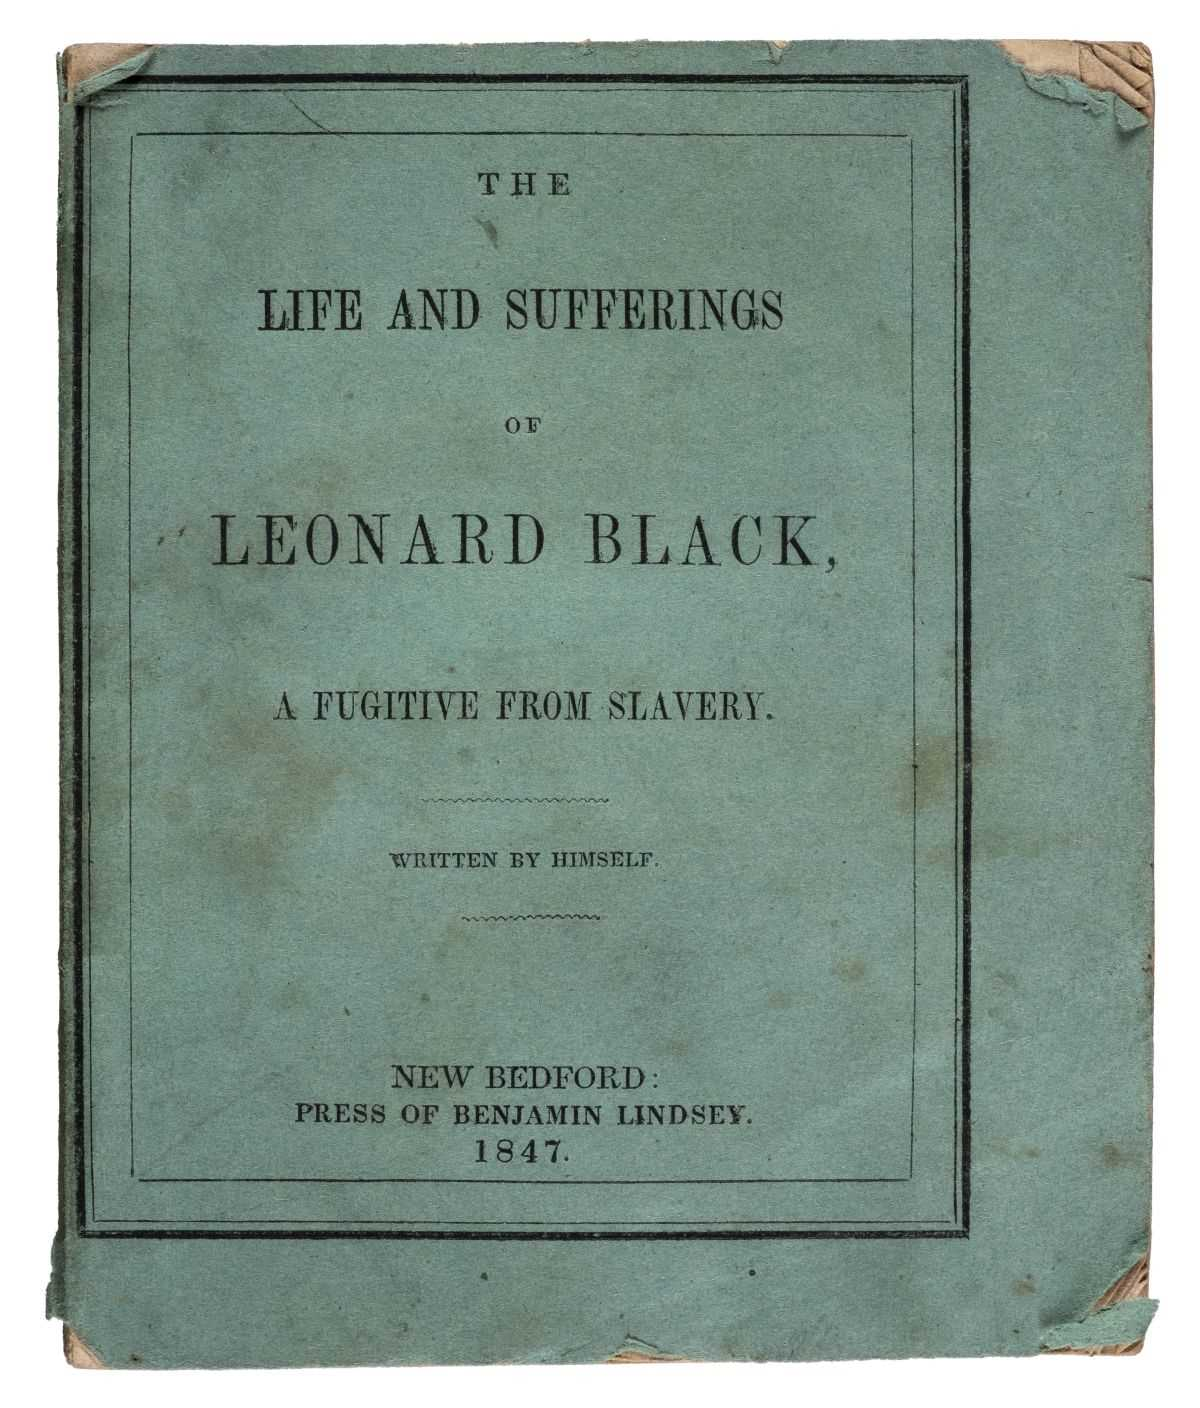 Lot 172-Slave Narrative. The Life and Sufferings of Leonard Black, 1847